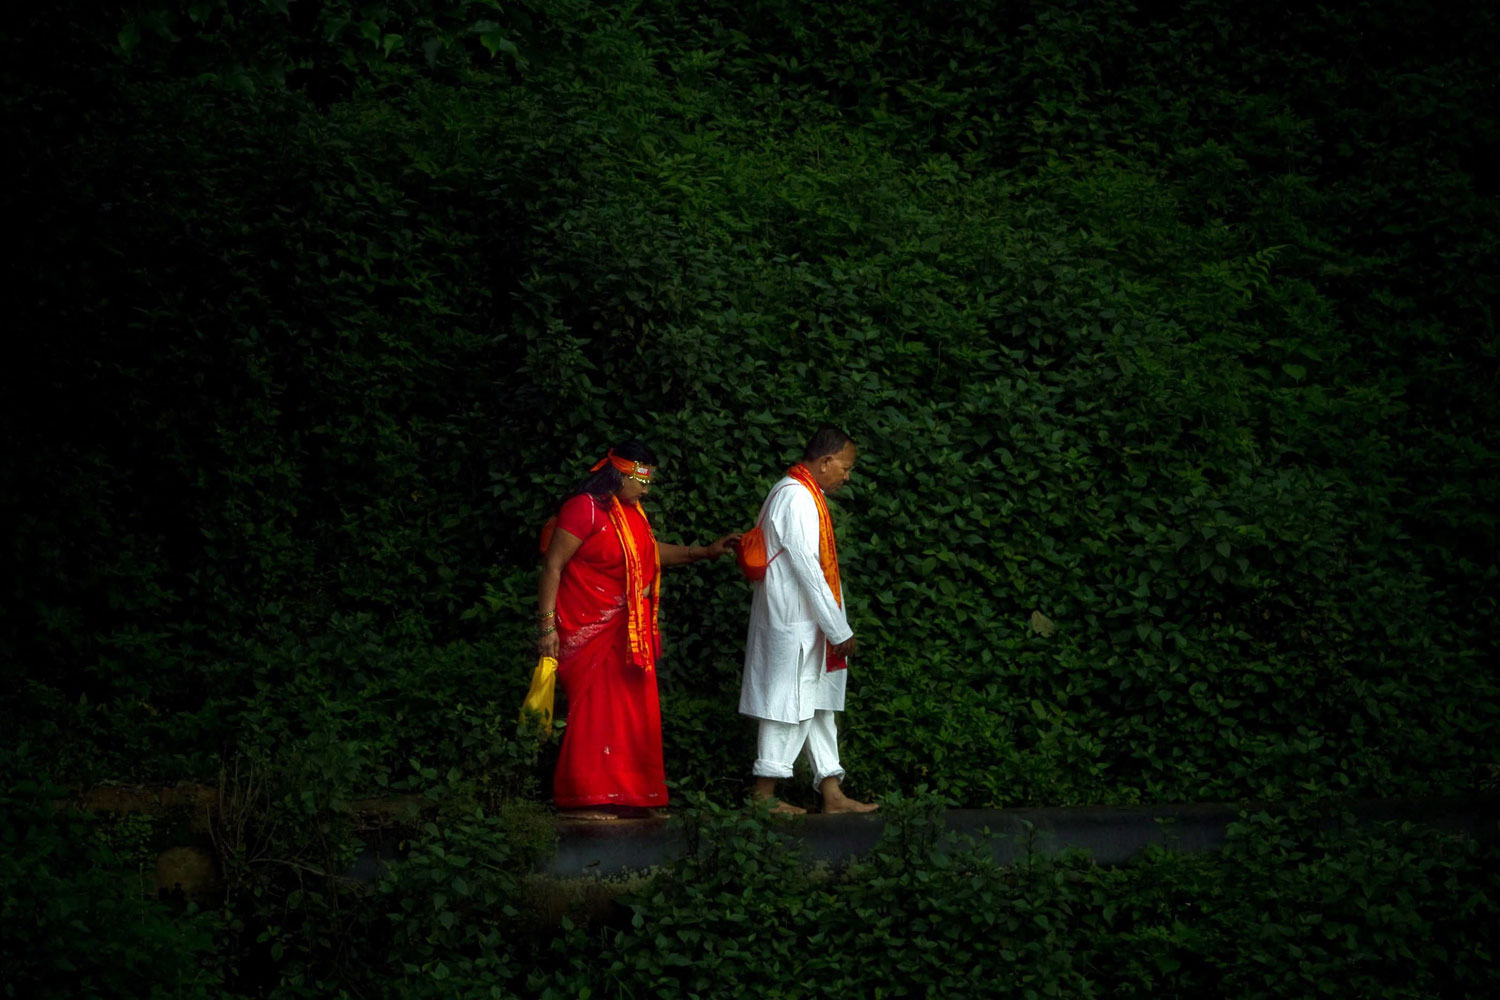 August 1, 2011. Nepalese Hindu pilgrims, also known as Bolboms, walk in the forest during a procession to worship Lord Shiva, the god of creation and destruction, at Sundarijal village, Nepal. Scores of Hindu devotees from all over the Nepal and neighboring country India gathered in the northern holy city Sundarijal, 22 km from the capital Kathmandu where they collect water claimed to be holy.